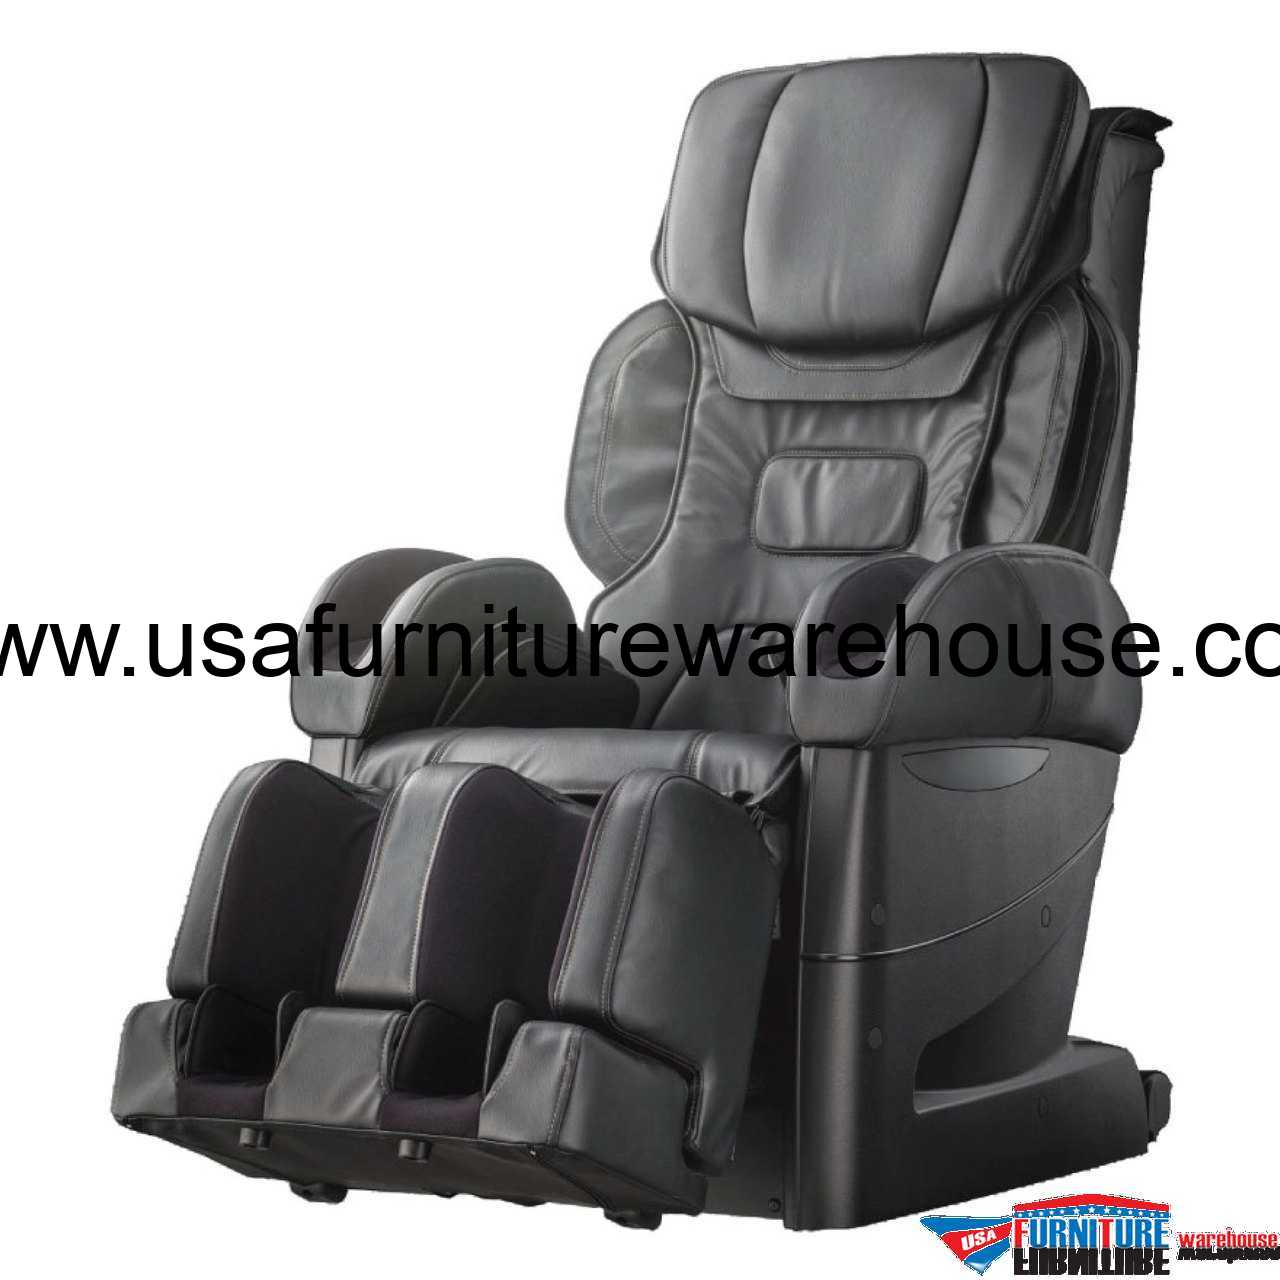 Osaki Massage Chairs Osaki Os 4d Pro Jp Premium Massage Chair Made In Japan